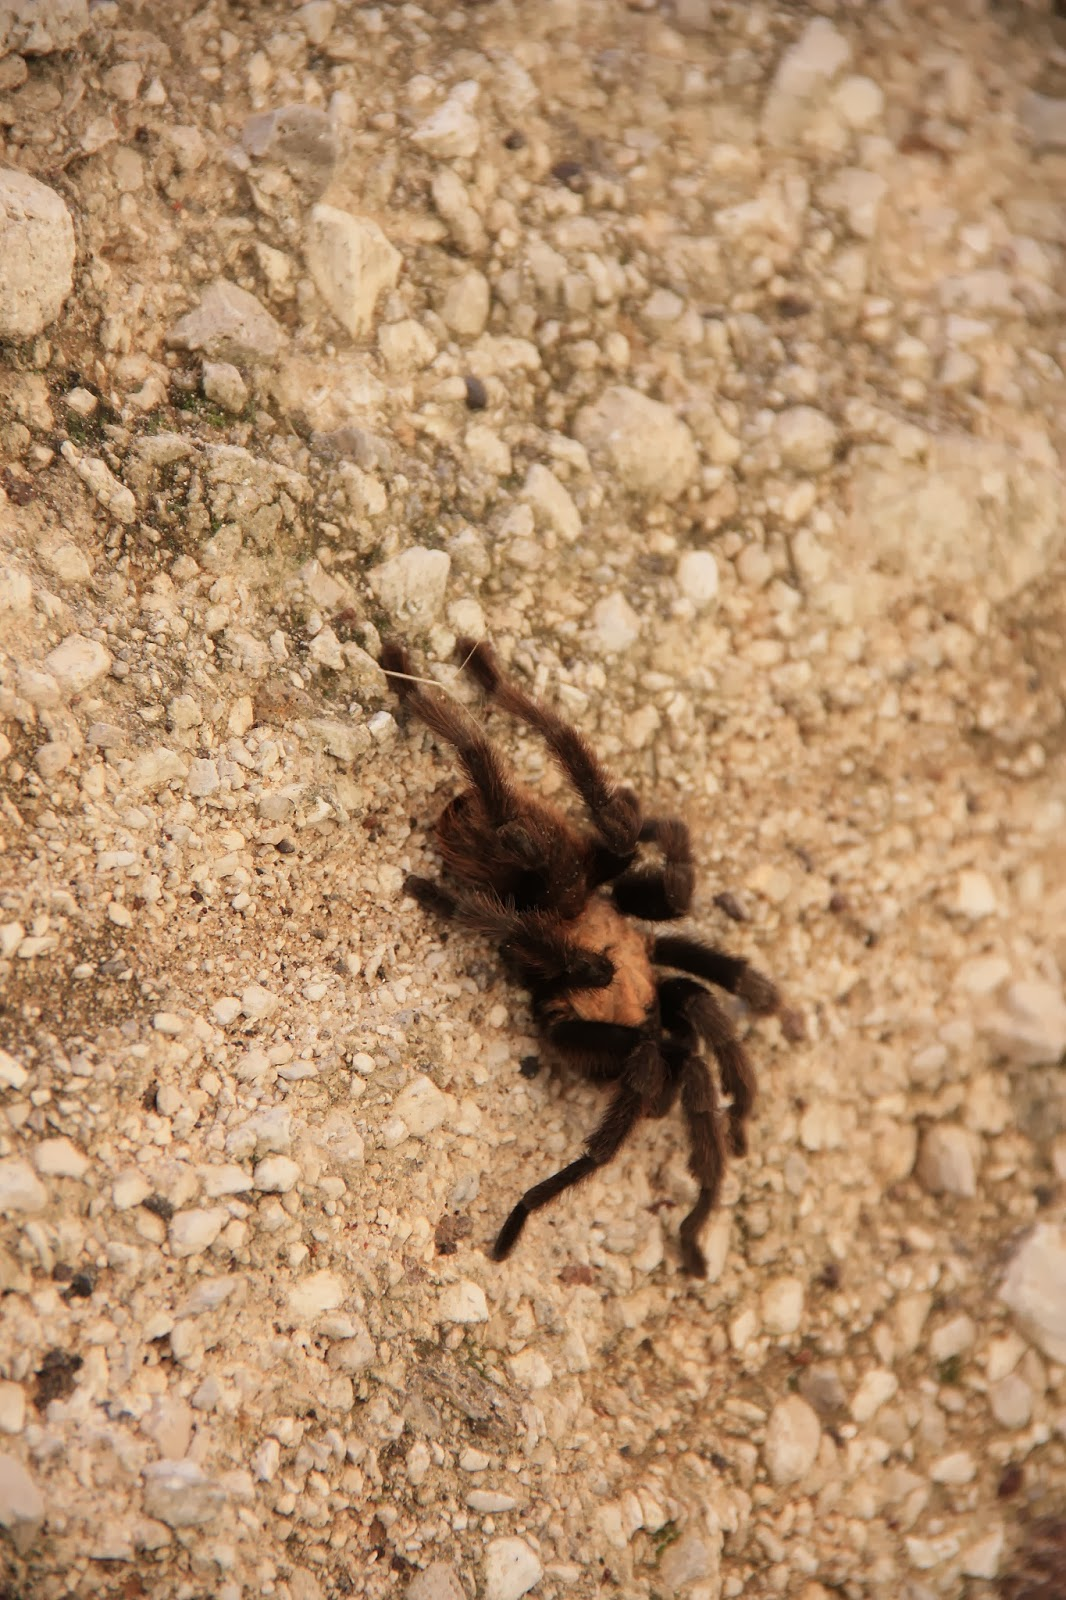 Iu0027ve only seen one other tarantula in the wild and that was on Mt. Diablo in the Bay Area when I first moved there in 1996. & A is for Adventure: Kasha-Katuwe Tent Rocks National Monument (New ...